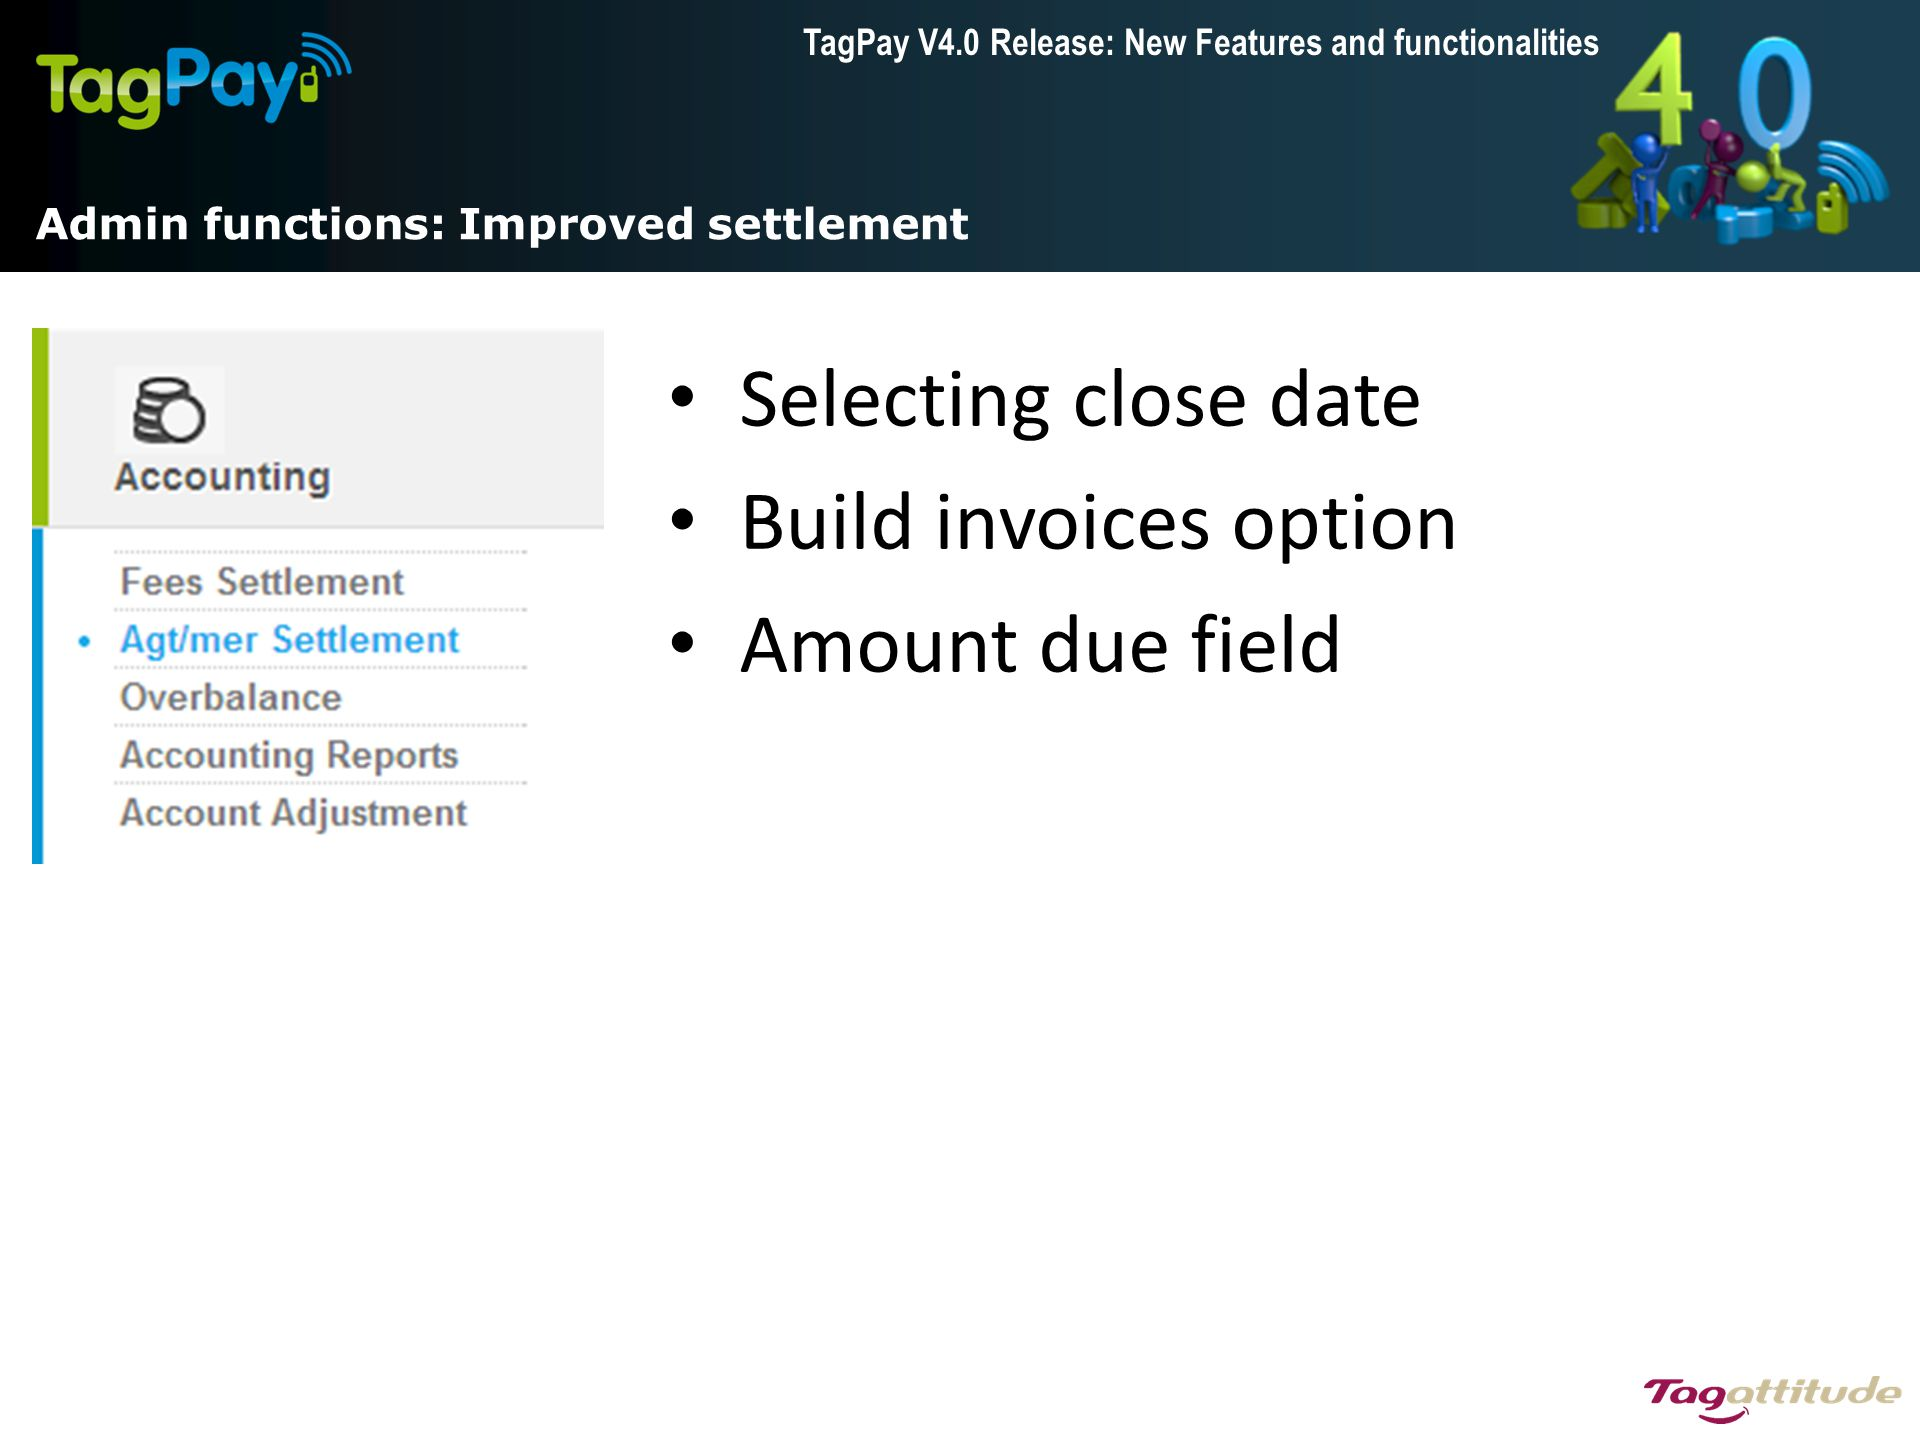 Admin functions: Improved settlement